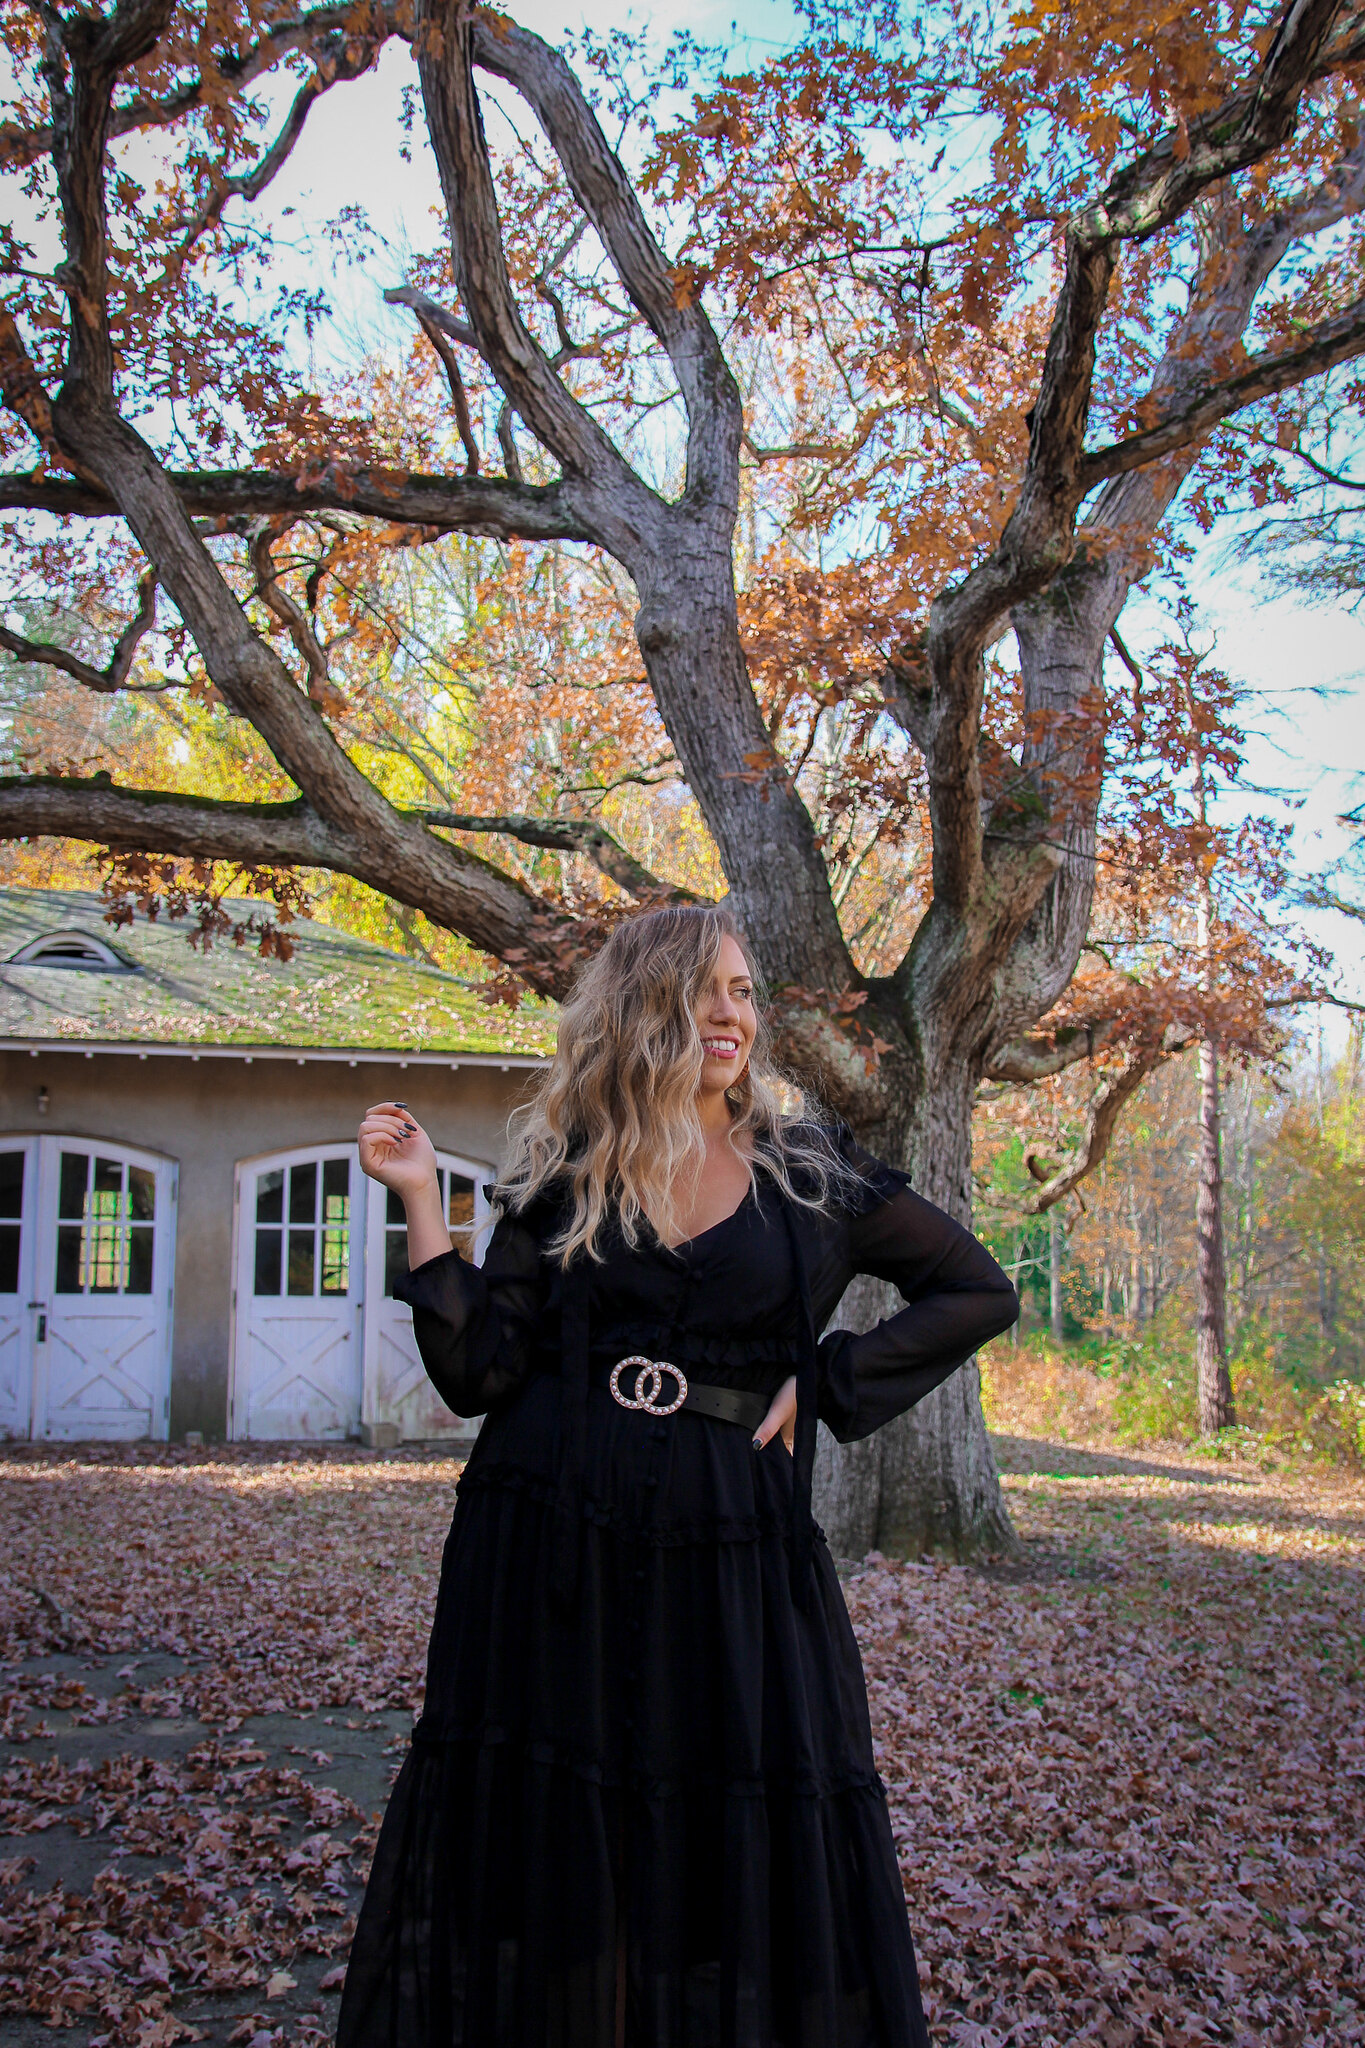 Long Black Sheer Dress Fall Photoshoot in New York | Long Blonde Wavy Hair | Fall Foliage | Westchester County NY Merestead